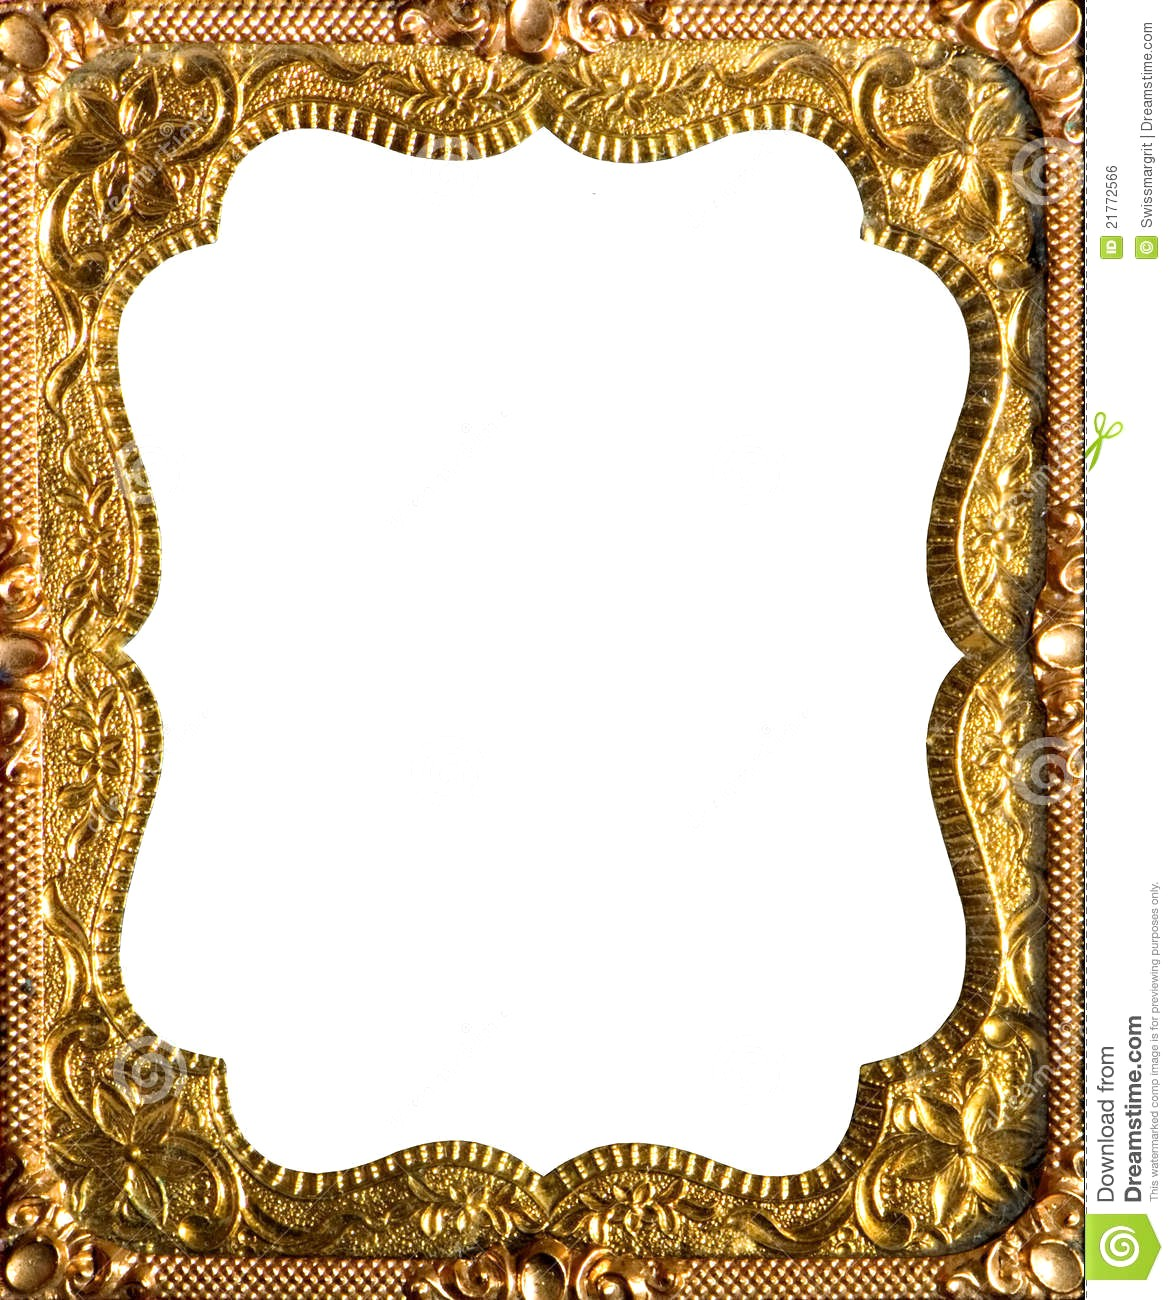 Ornate frame clipart 2 » Clipart Station.